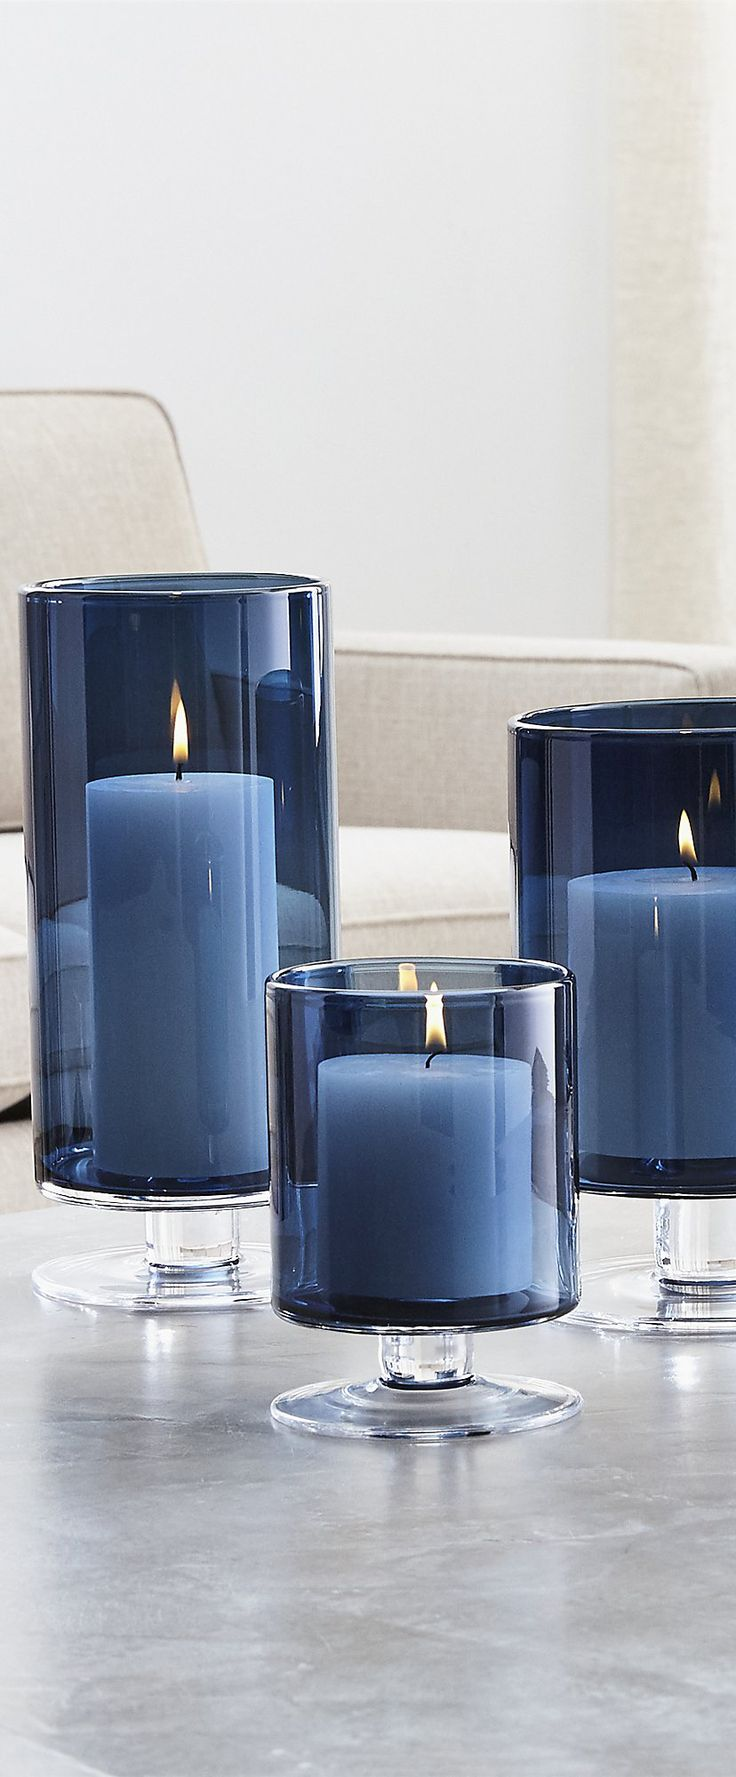 London Blue Hurricane Candles   Home Decor. 37642 best images about Stunning Home Decor   Design on Pinterest